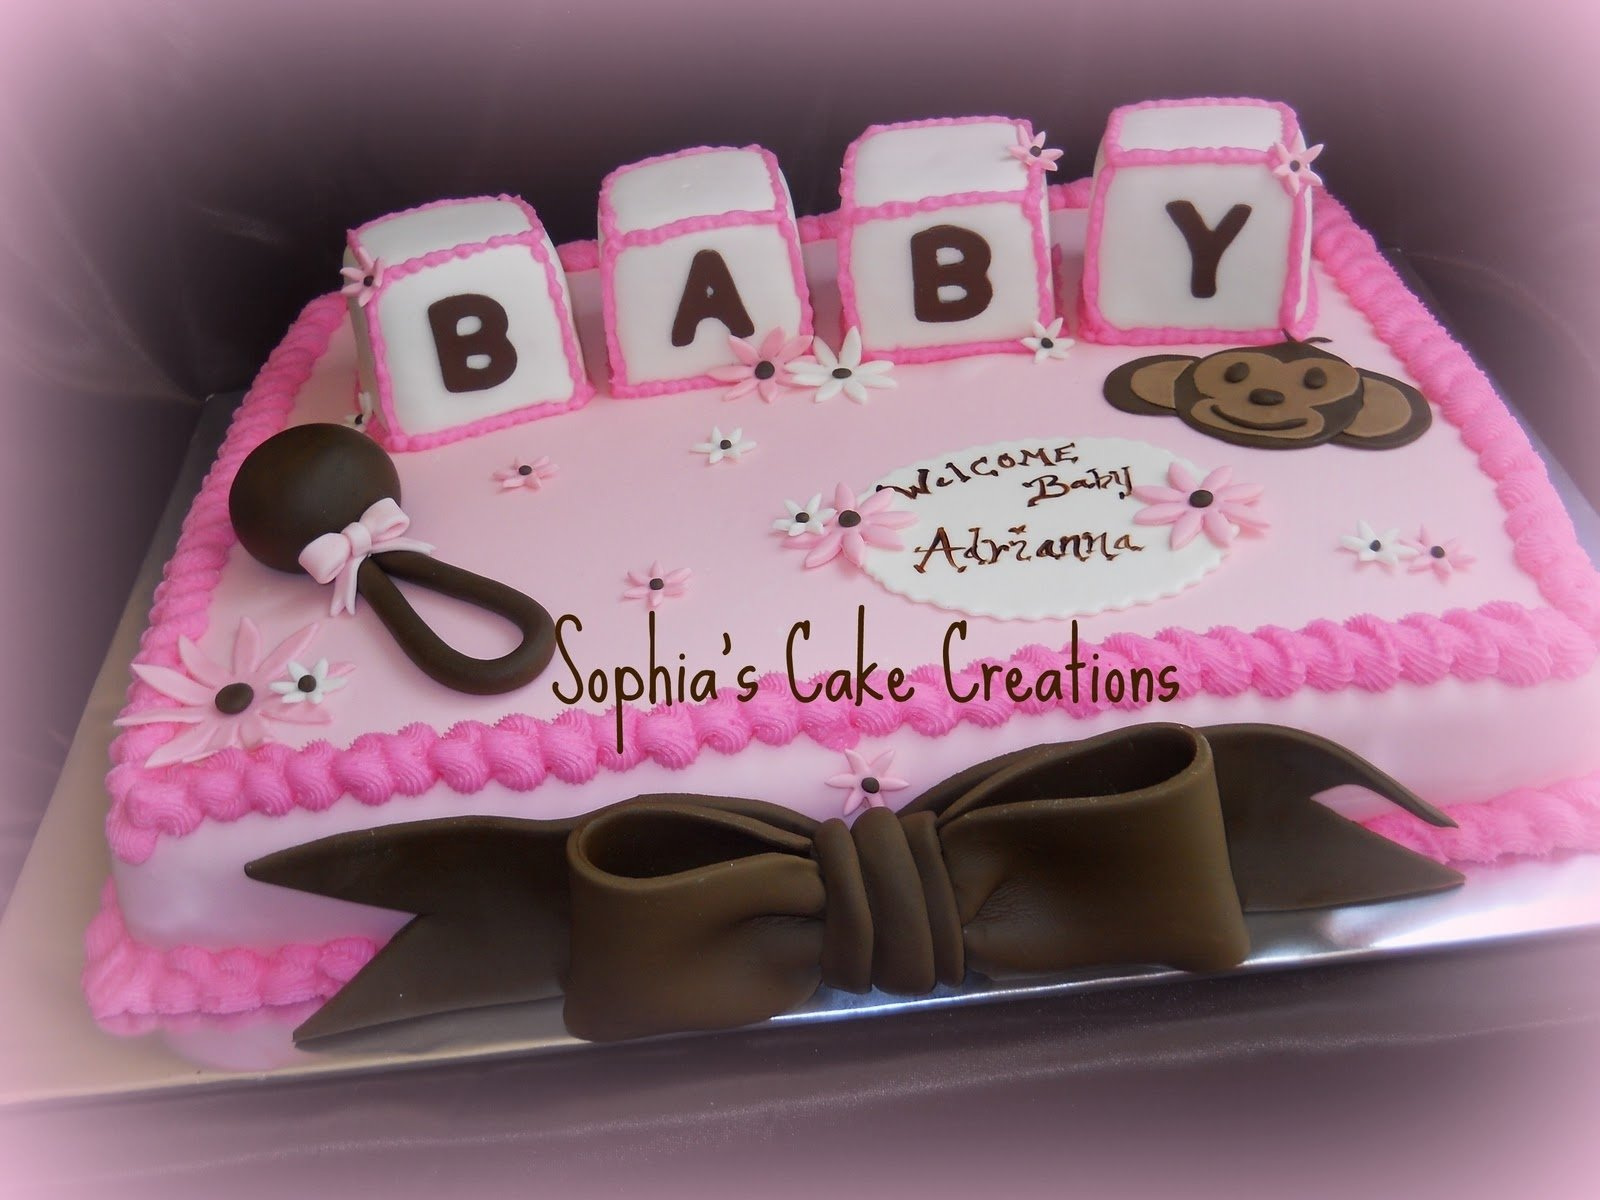 10 Stunning Baby Shower Cake Ideas For A Girl ideas baby shower cake decorations for girl twin boy and simple 2021